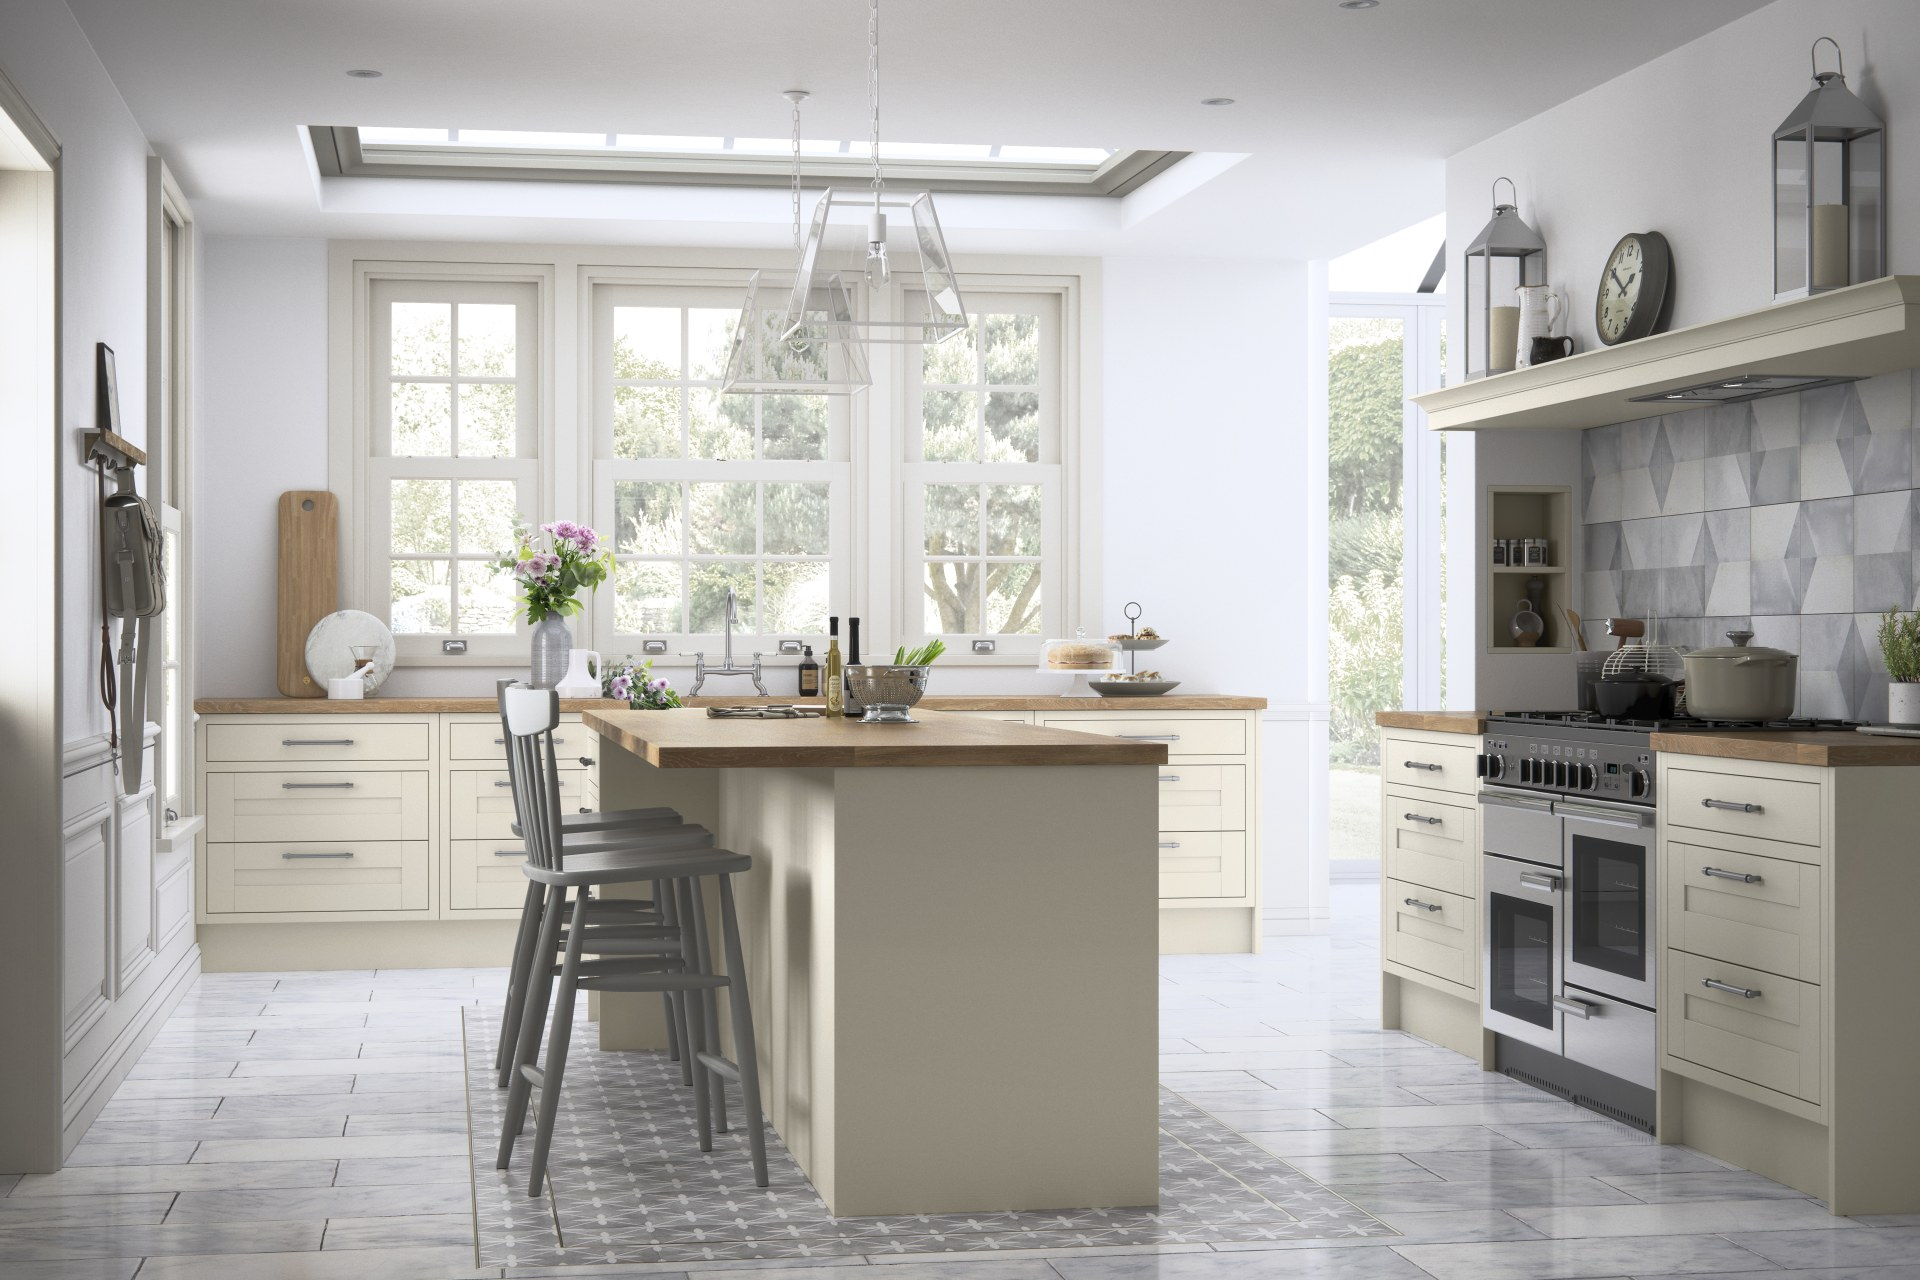 Somerton by Magnet. Premium traditional finish with visible grain detail in solid framed timber. Comes in sage or Fern colours.